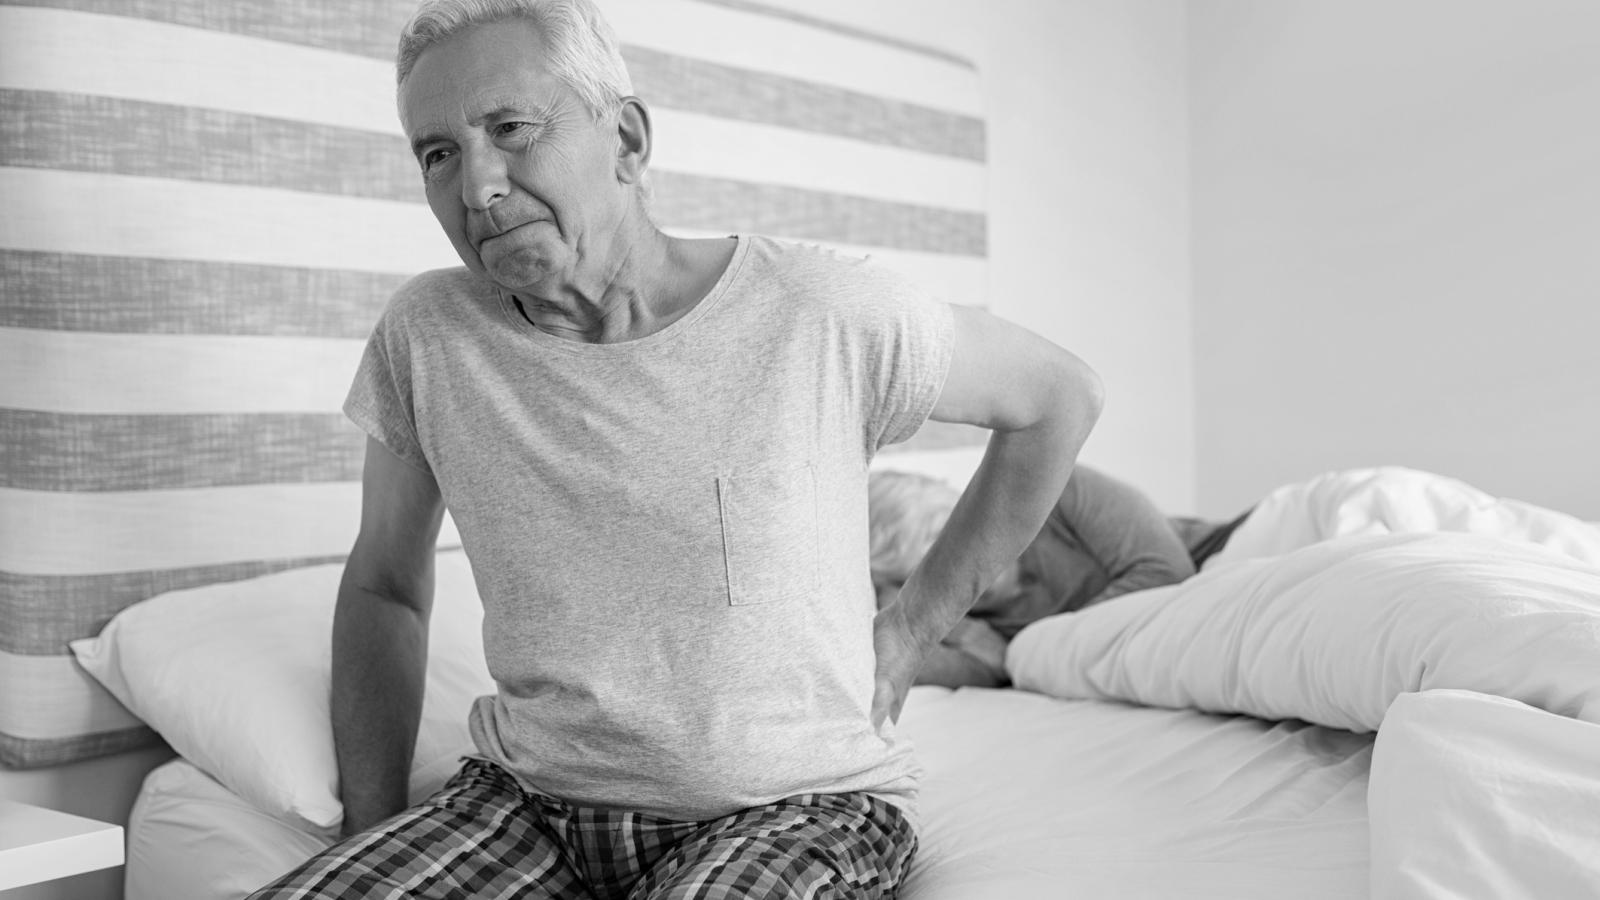 Older man in pain sitting in bed